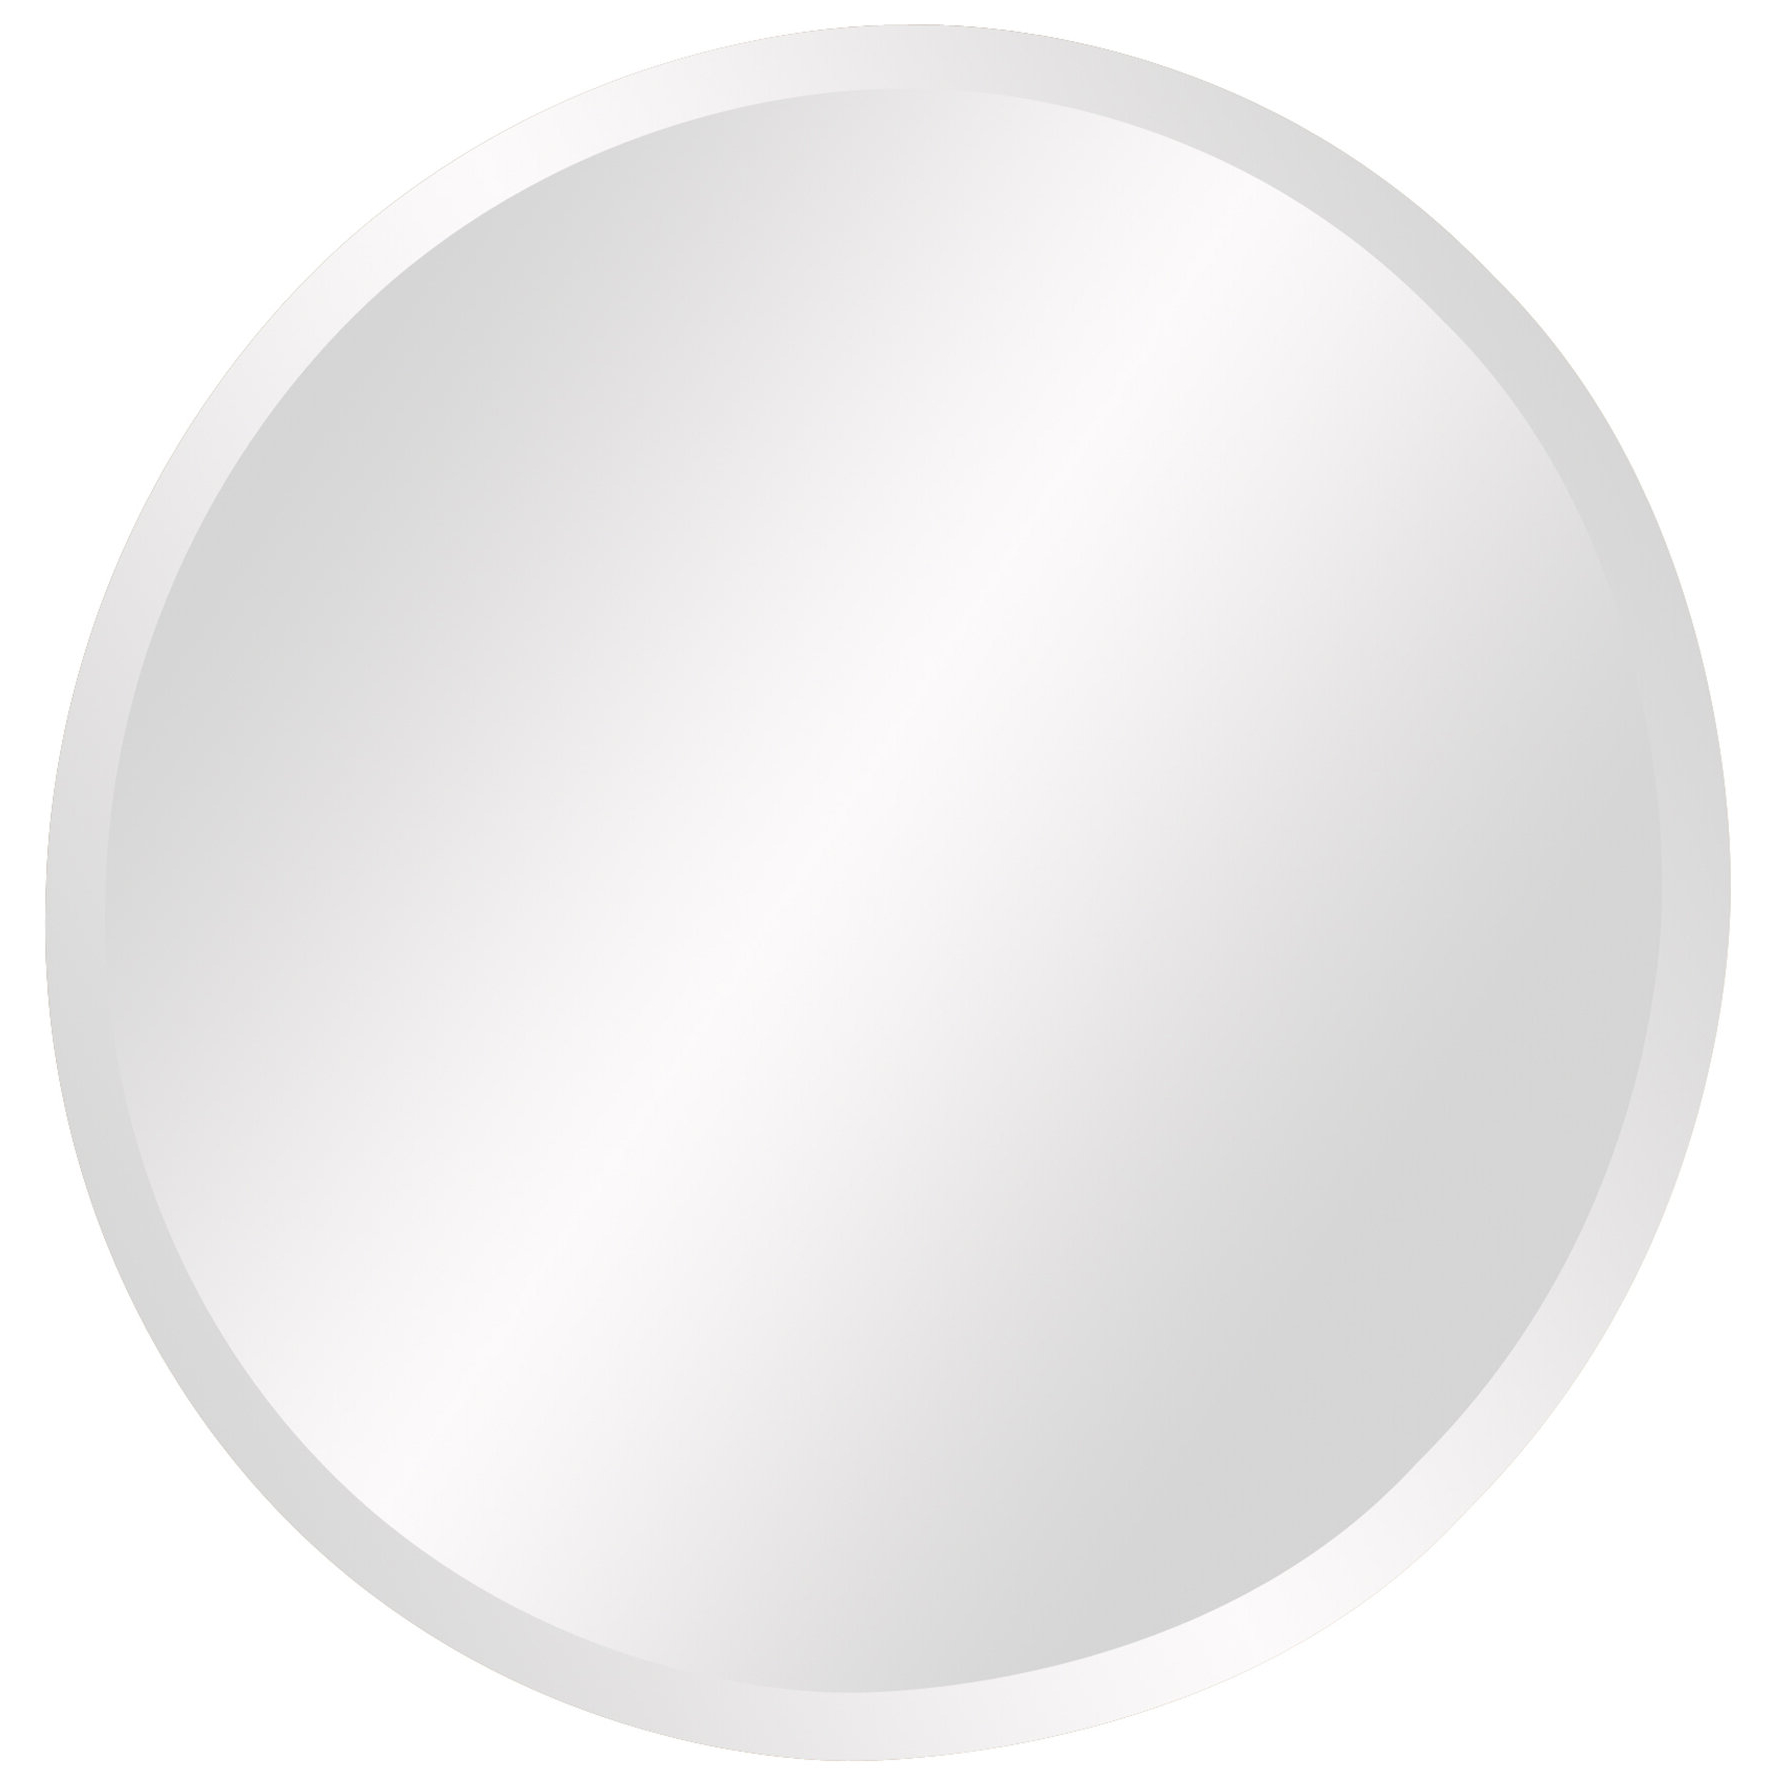 Best And Newest Celeste Frameless Round Wall Mirror Within Celeste Frameless Round Wall Mirrors (View 2 of 20)